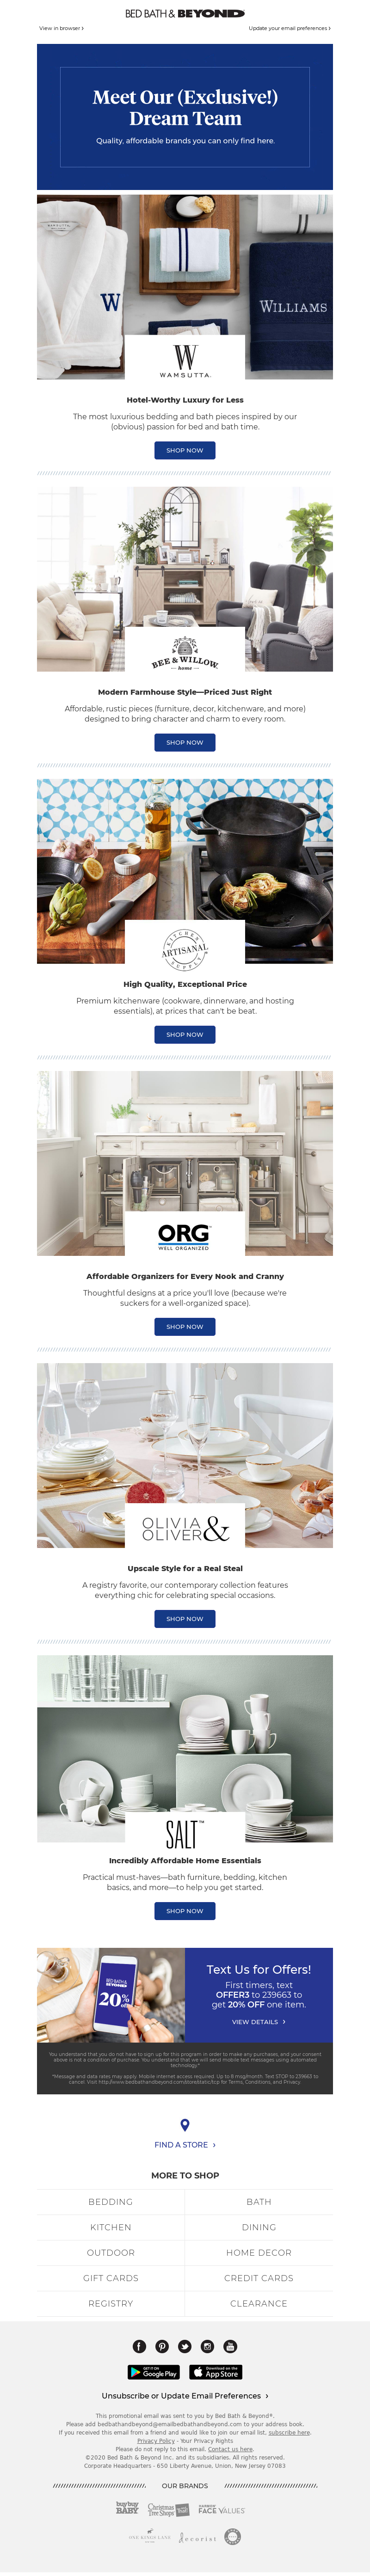 Bed Bath & Beyond Email example for onboarding new customers